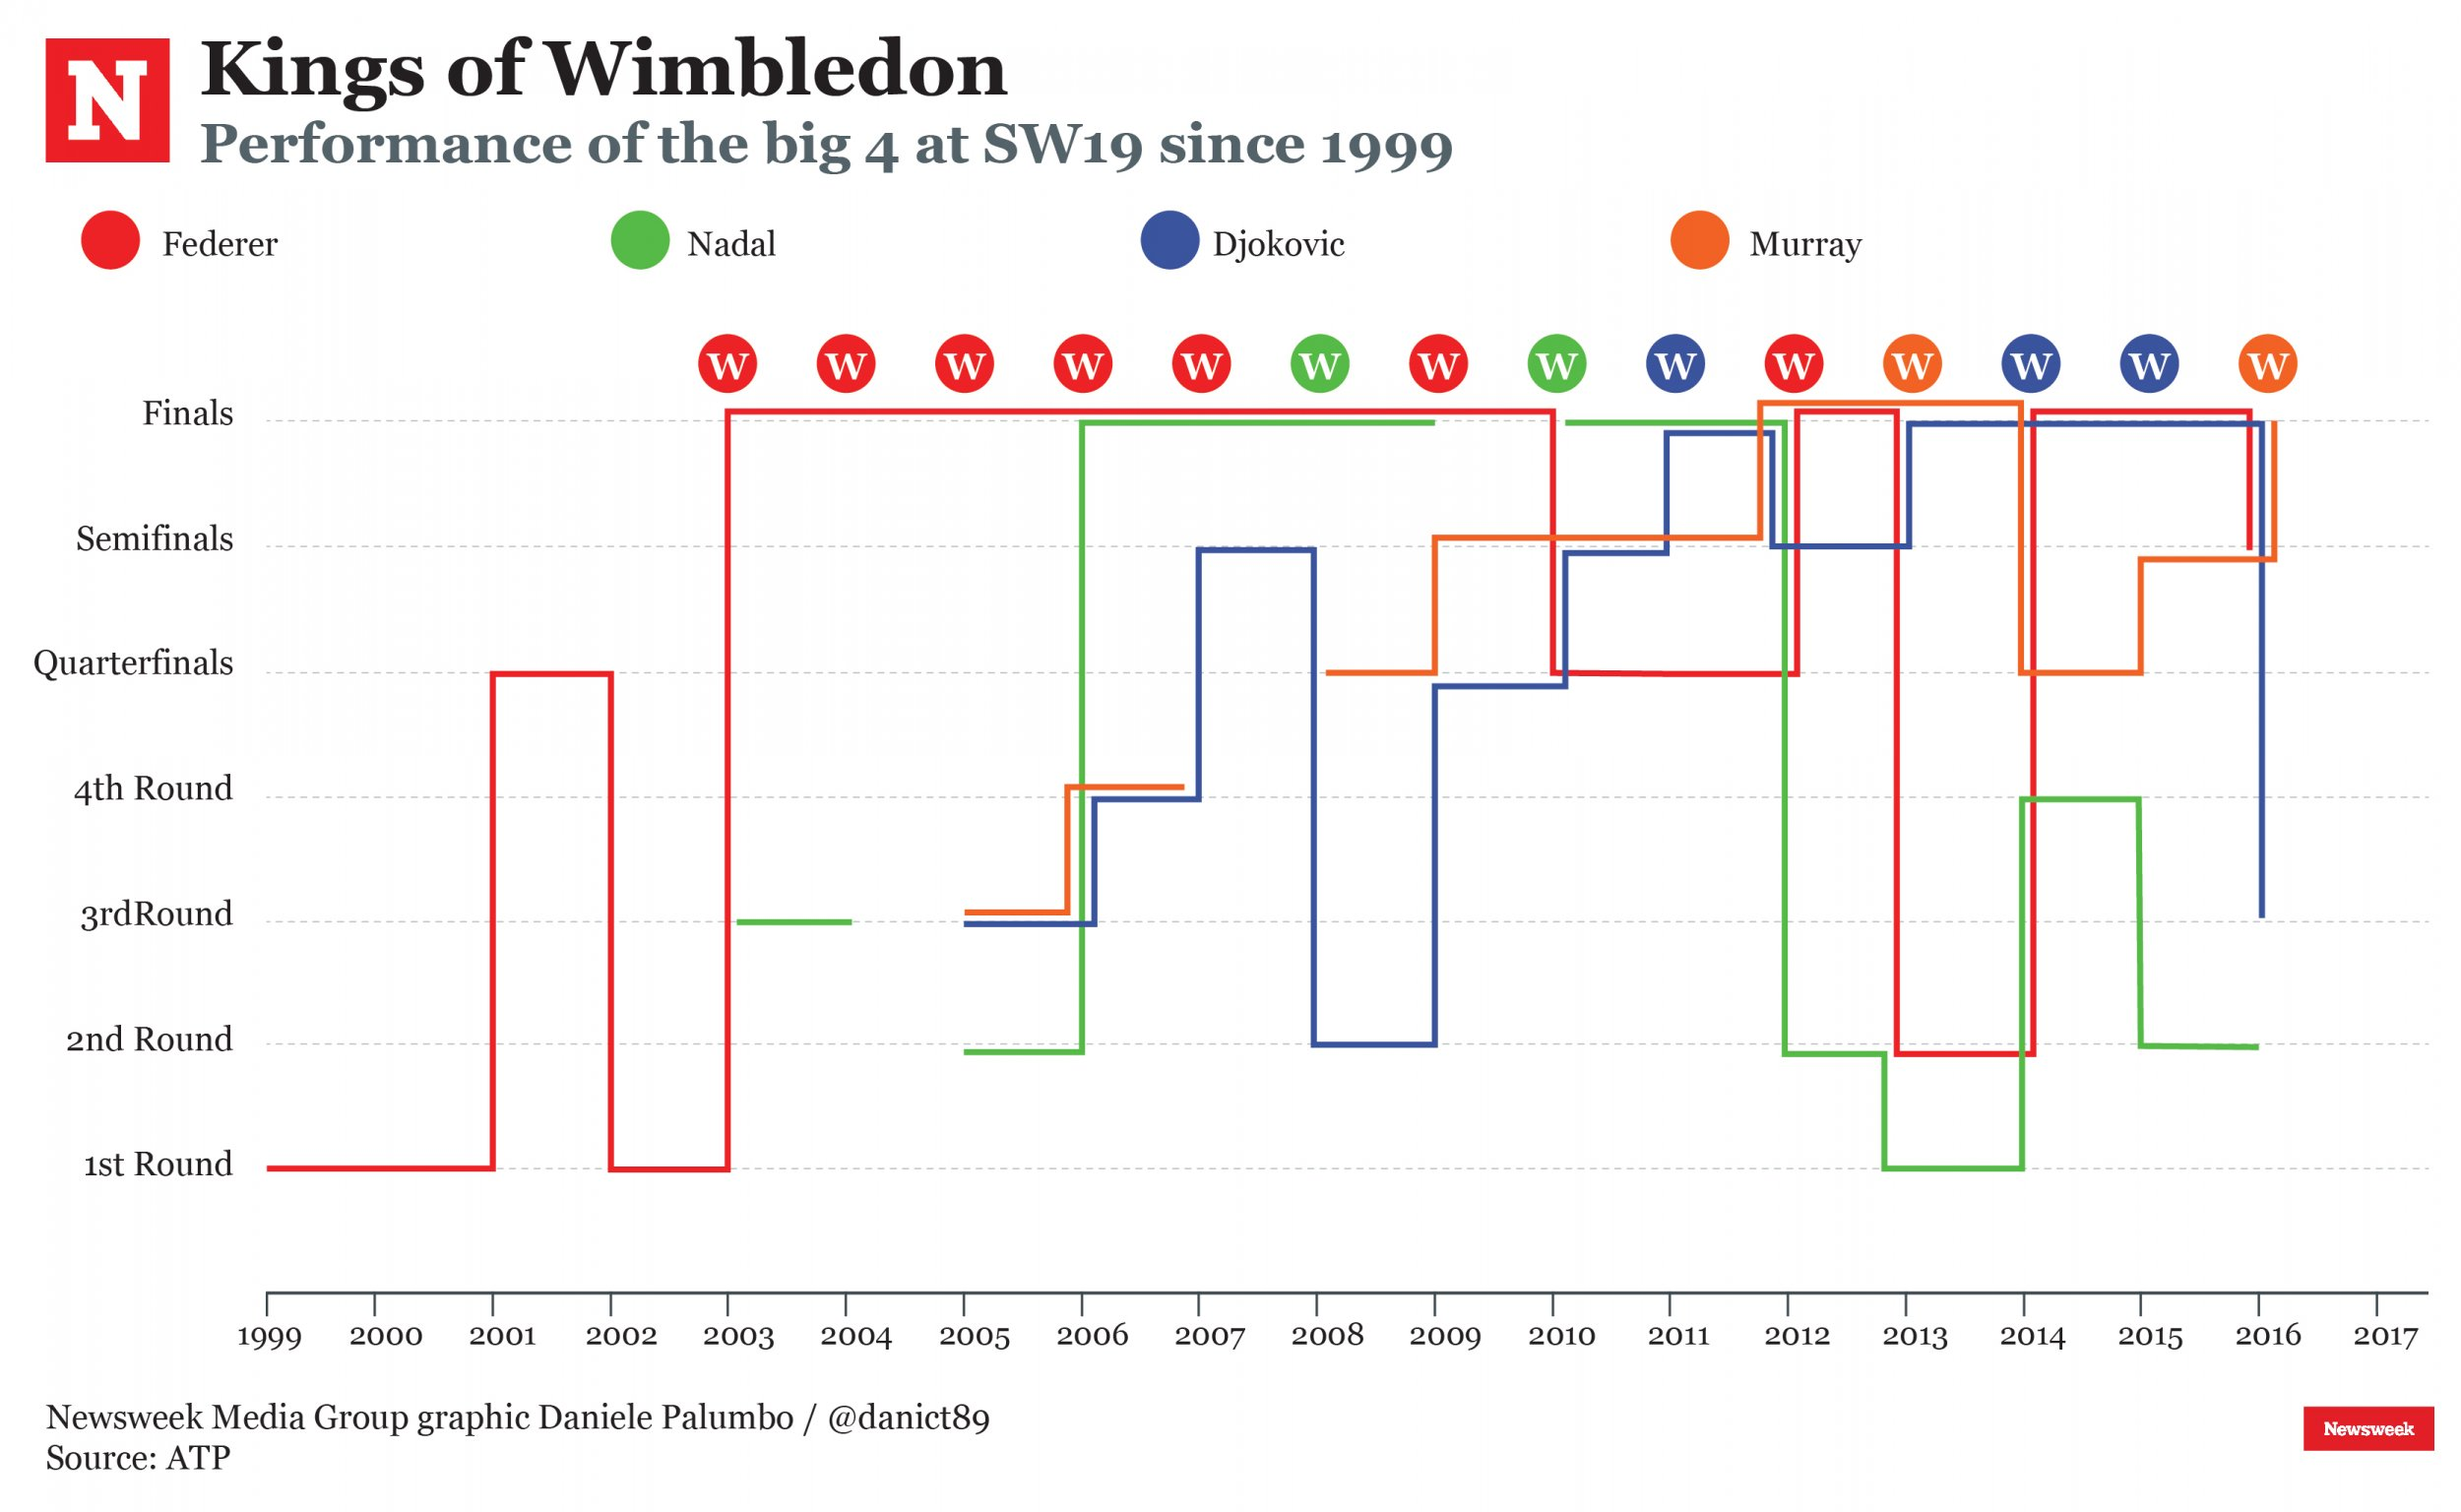 Kings of Wimbledon